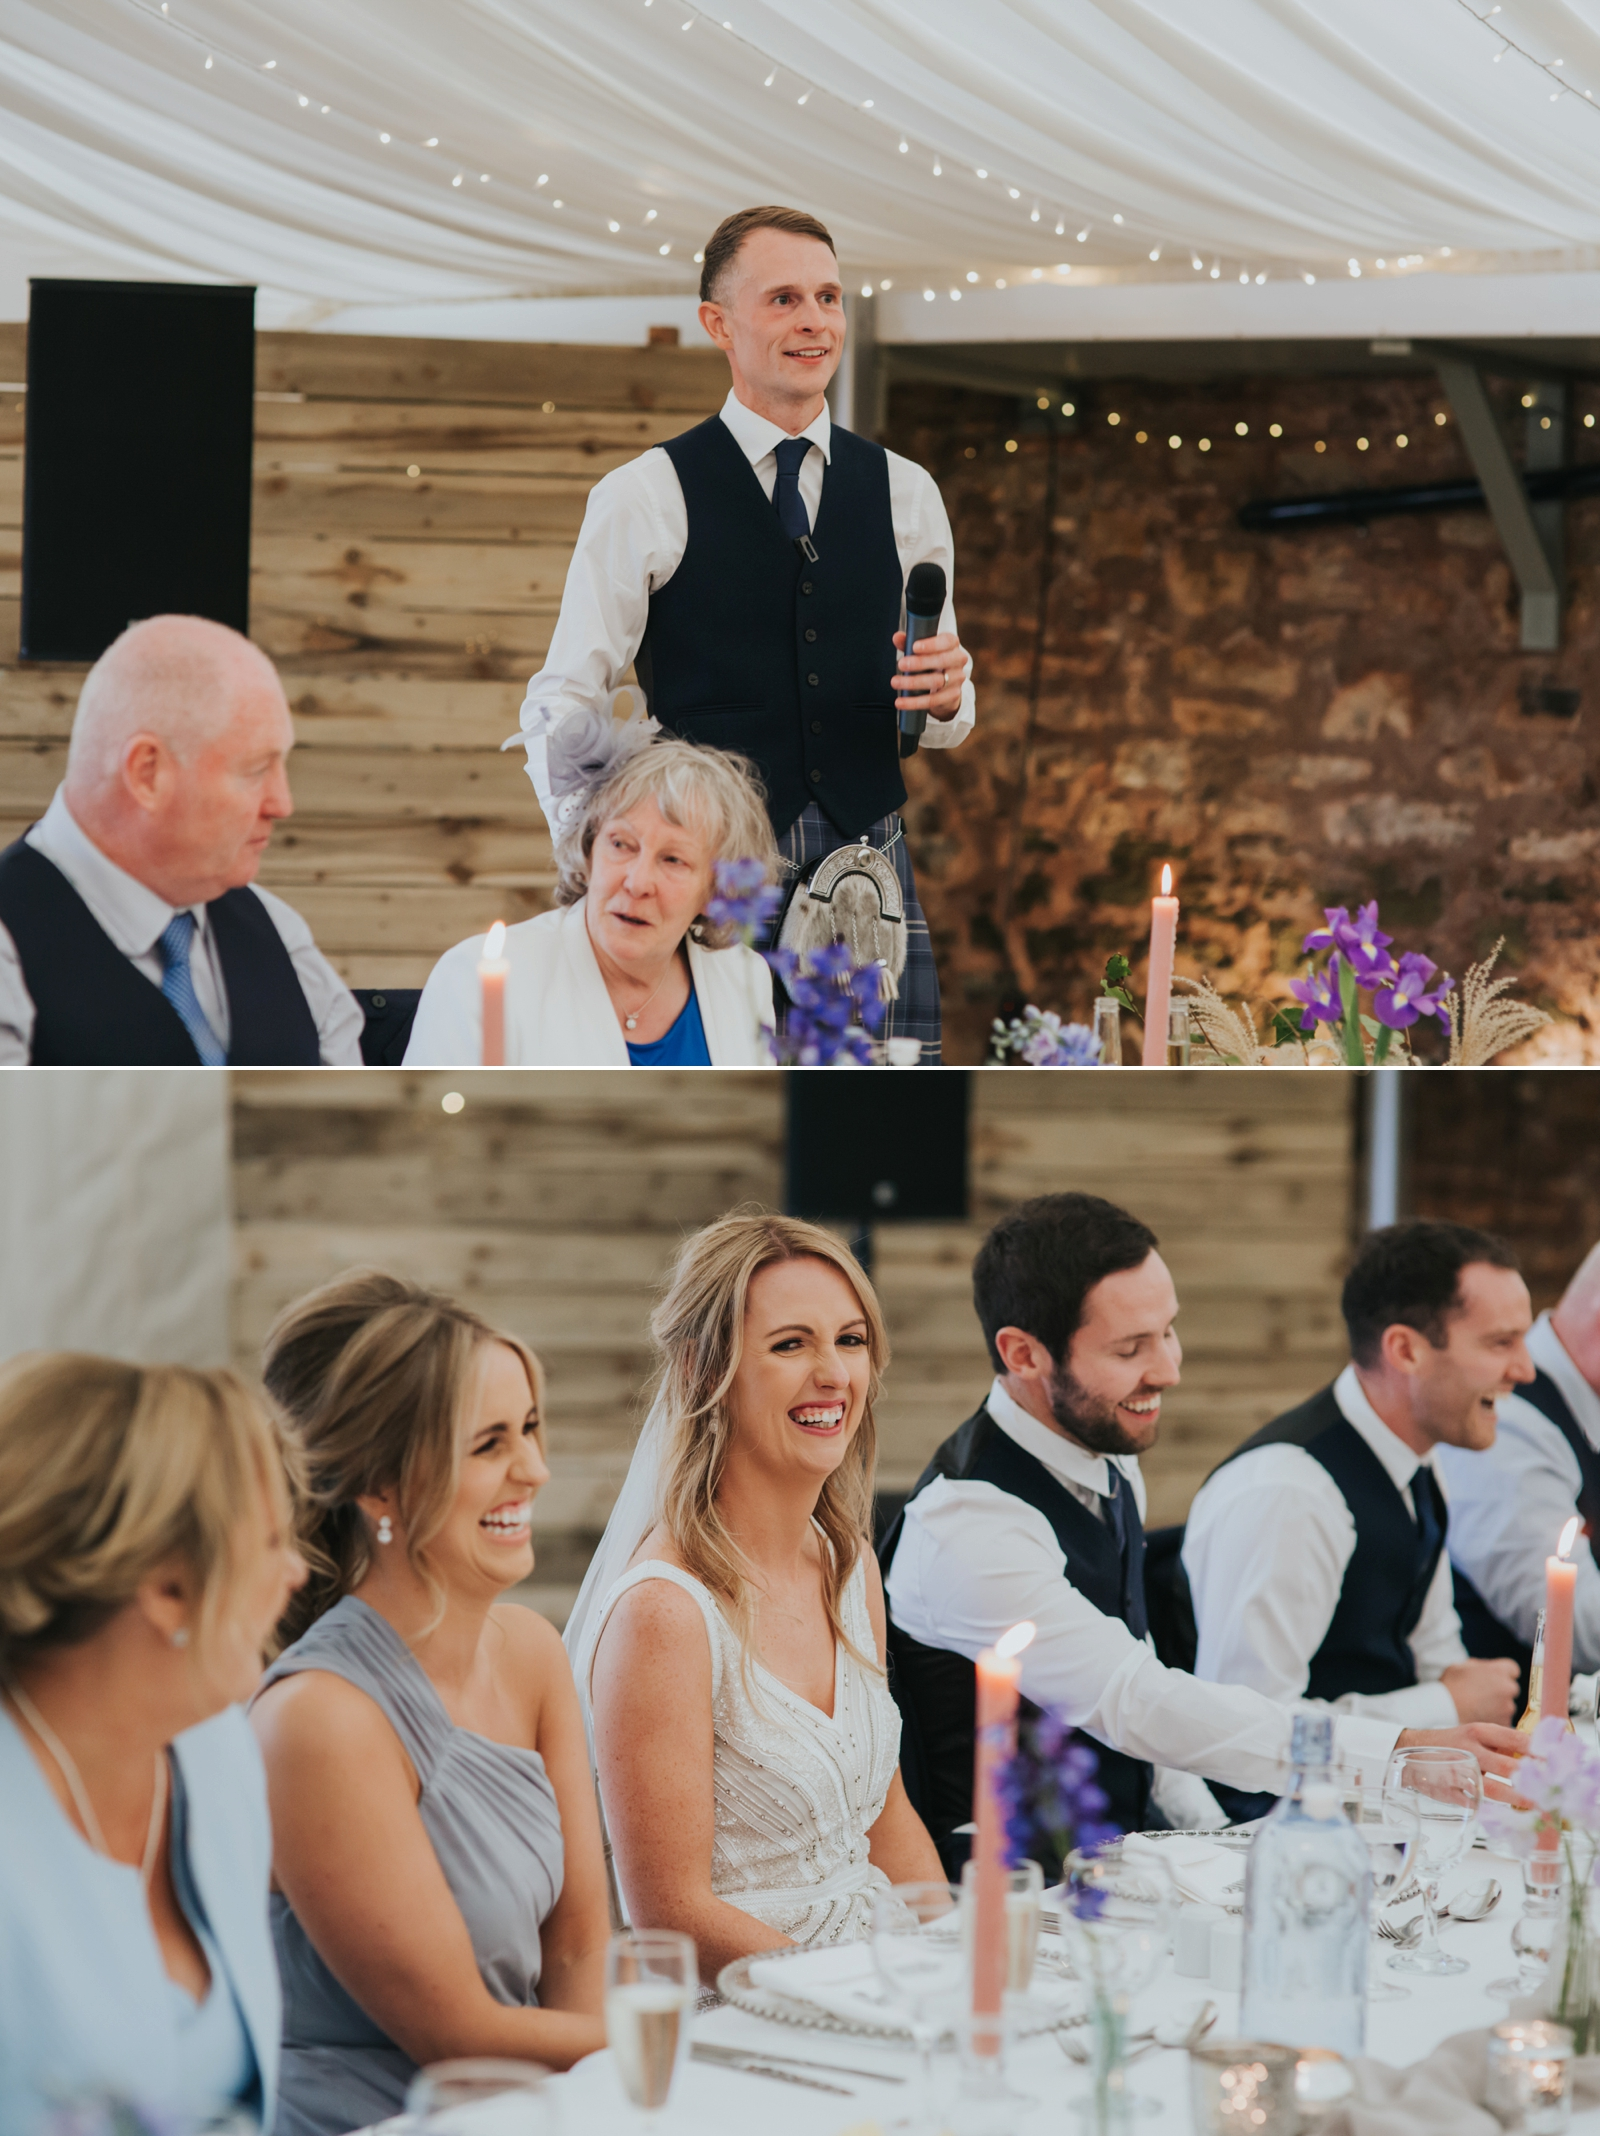 cow-shed-crail-rustic-wedding-gemma-andy-loraine-ross-photographygemma-andy-wedding-0656.jpg